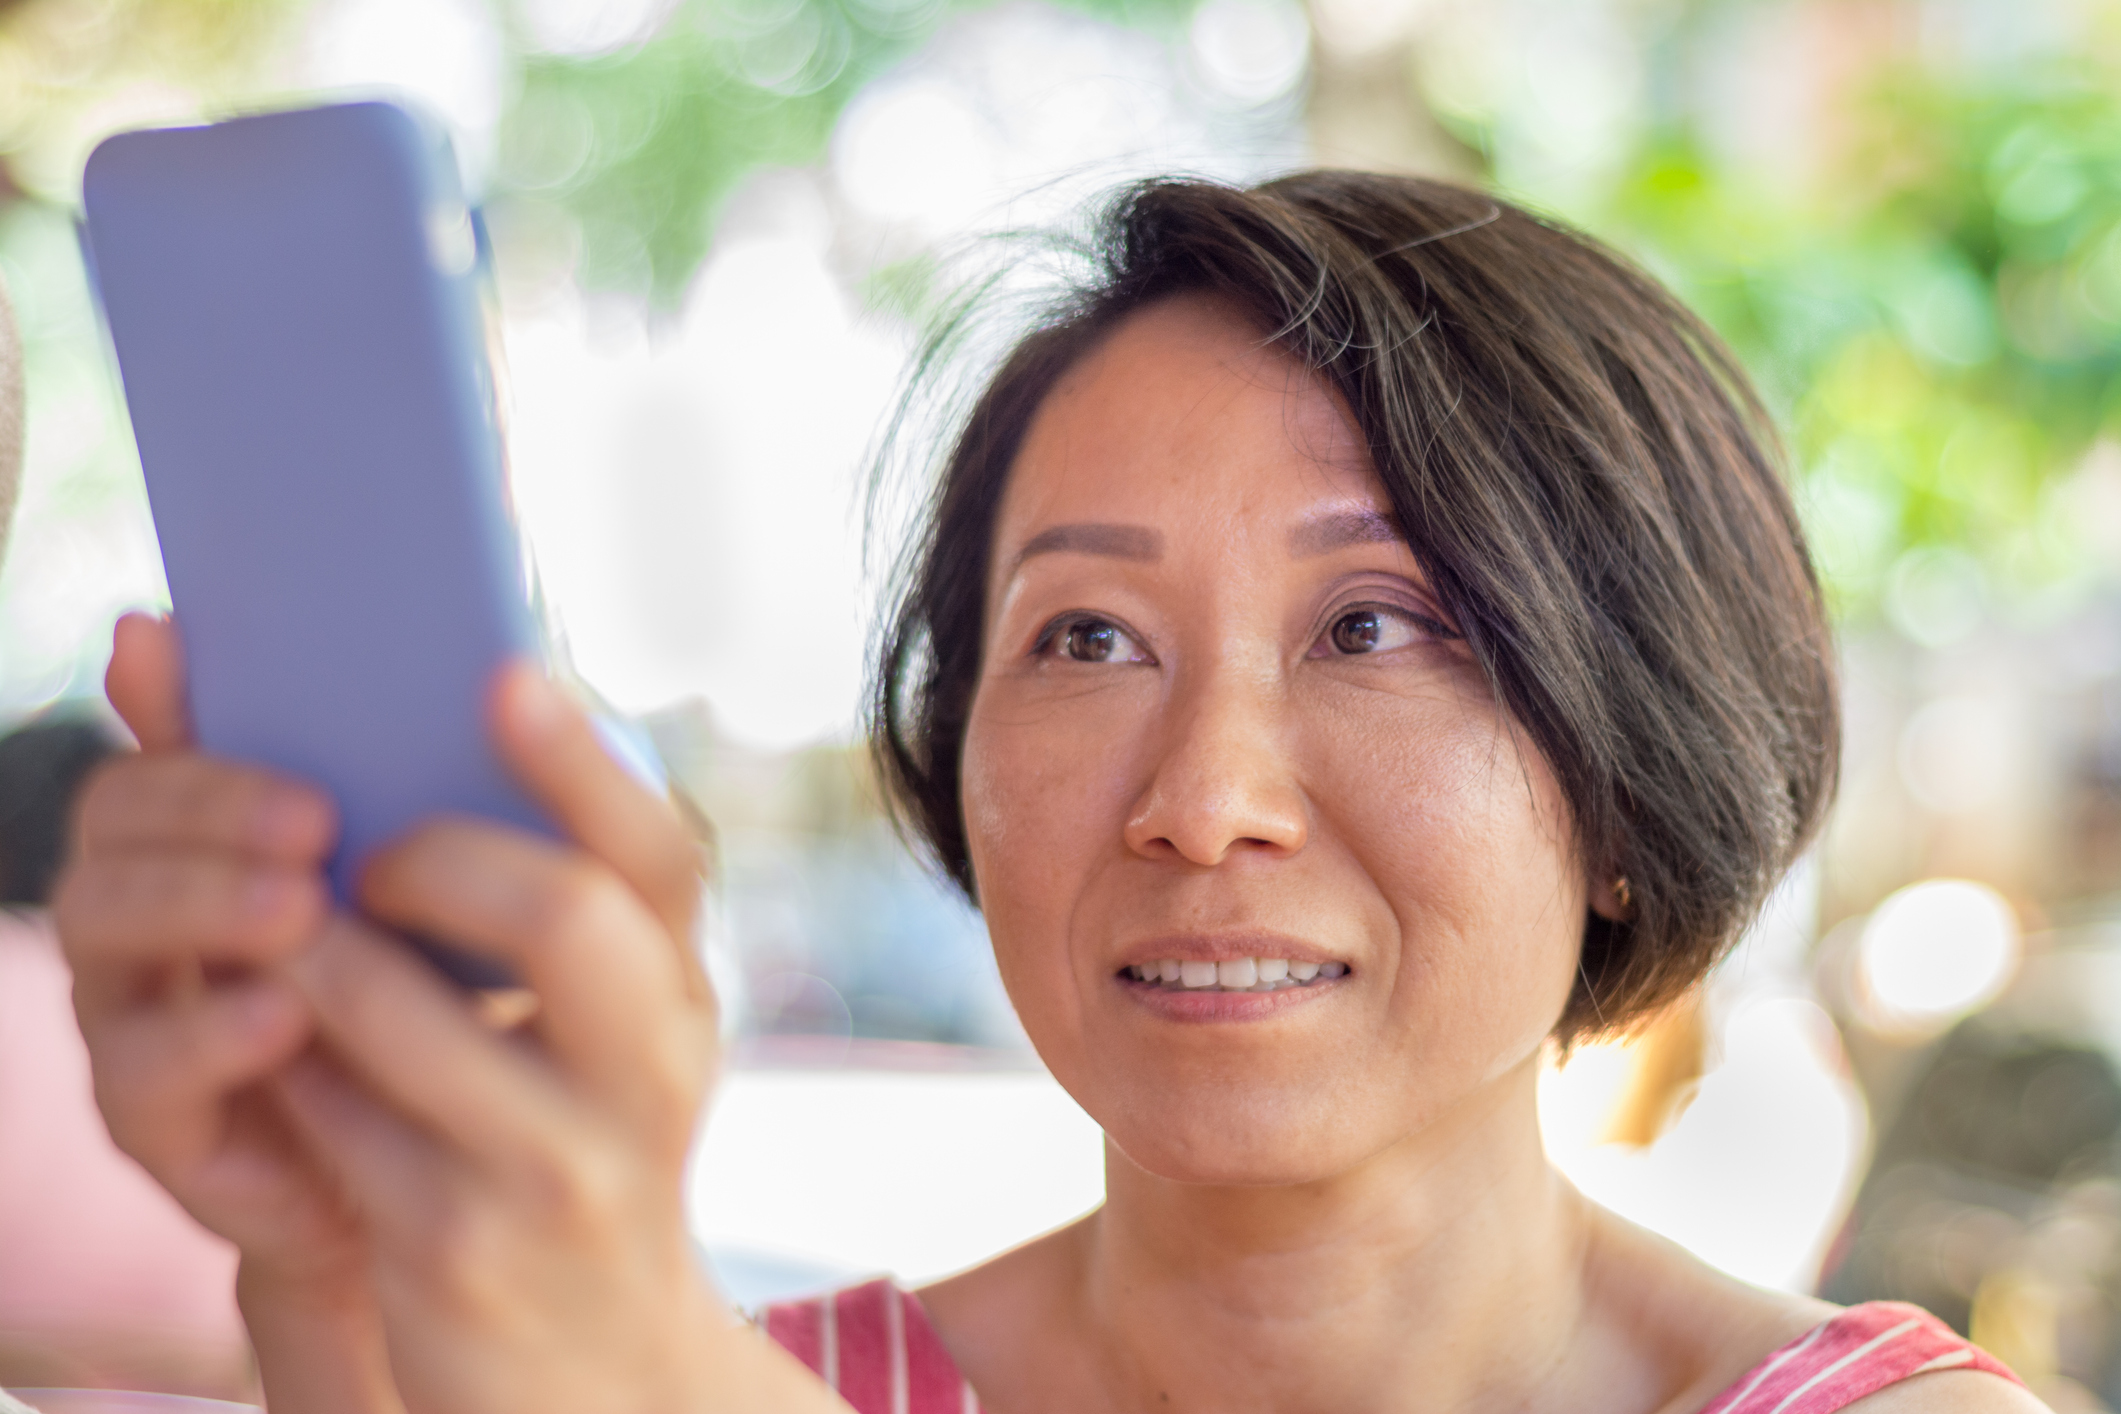 Asian mid adult woman pointing her smartphone and taking a photograph. Looking at the telephone camera app screen.